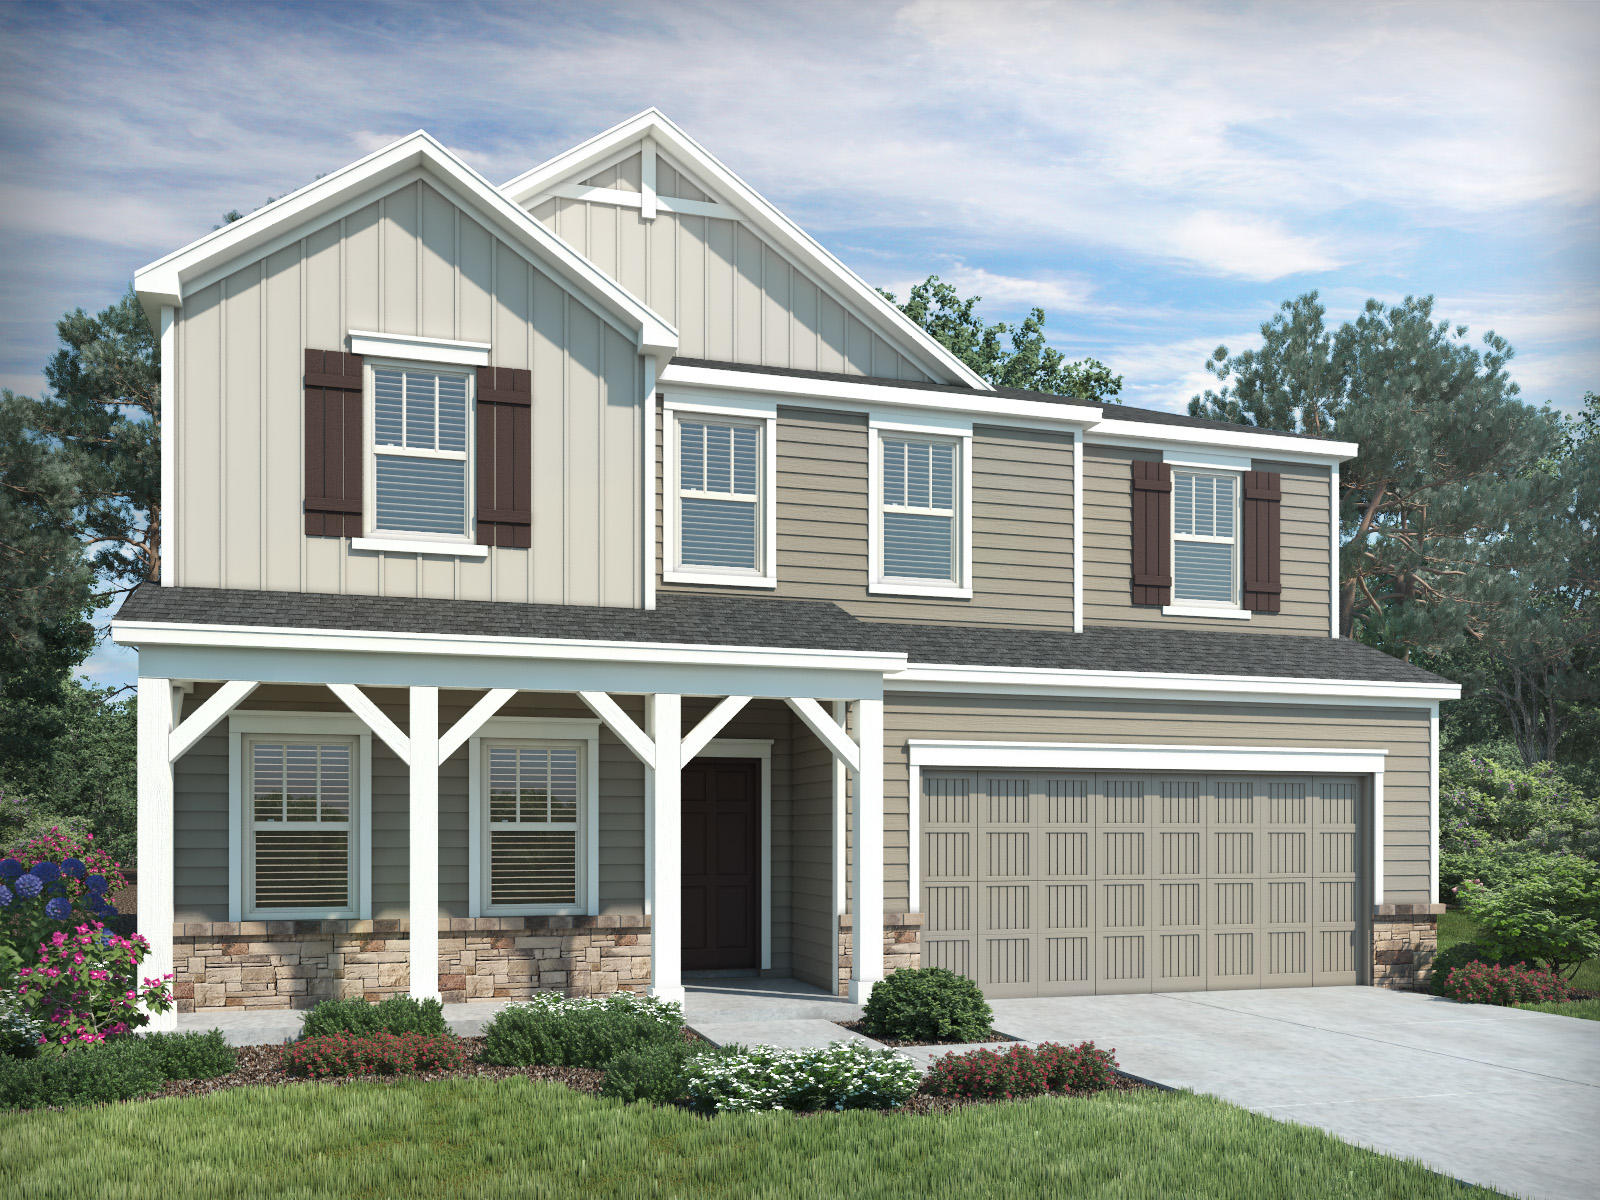 Tremendous Chastain Plan Marietta Ga 30008 5 Bed 3 Bath Single Family Home 3 Photos Trulia Home Interior And Landscaping Elinuenasavecom